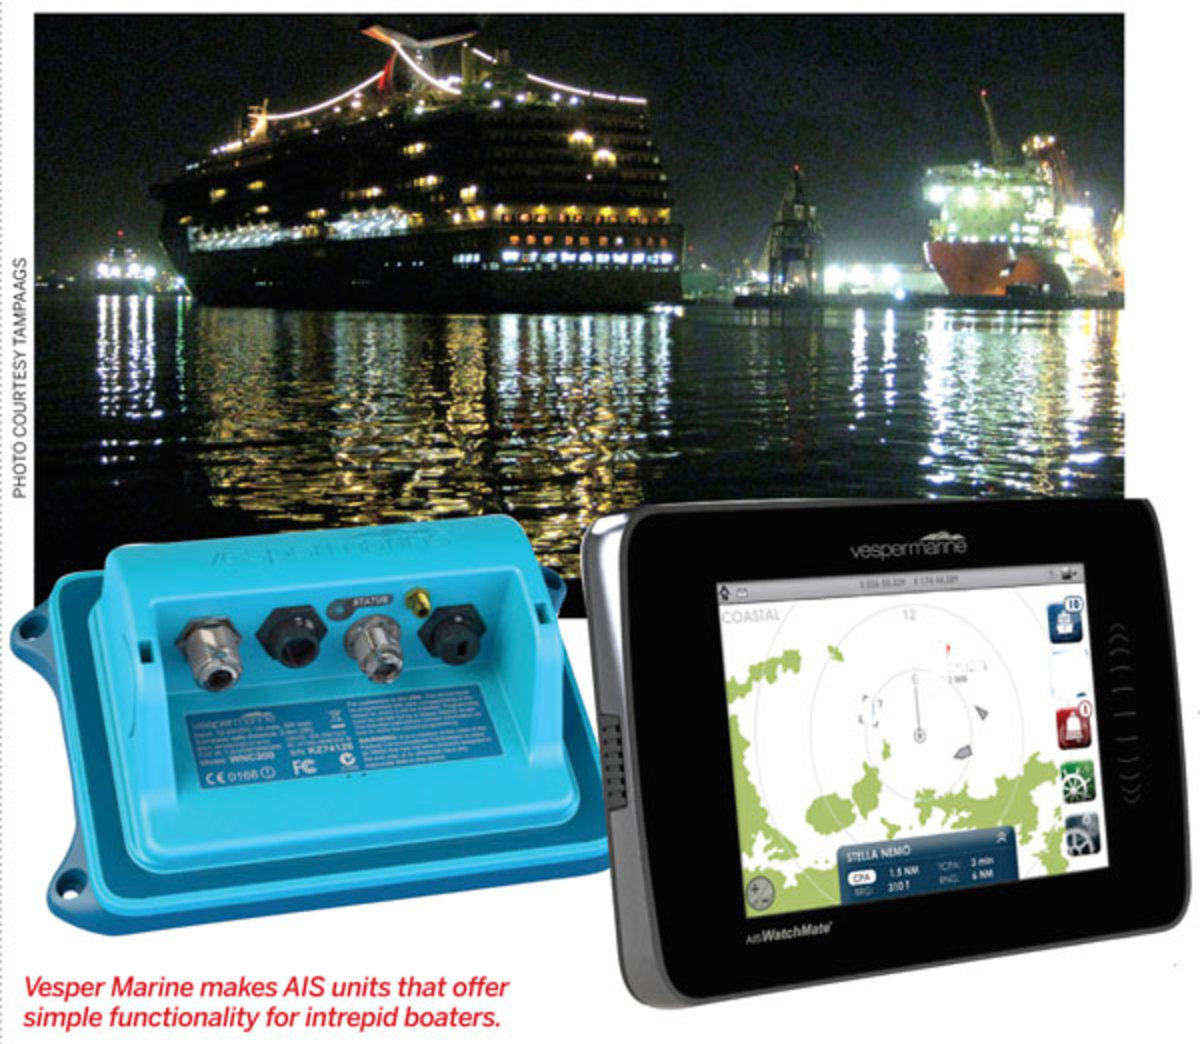 Vesper Marine makes AIS units that offer simple functionality for intrepid boaters.